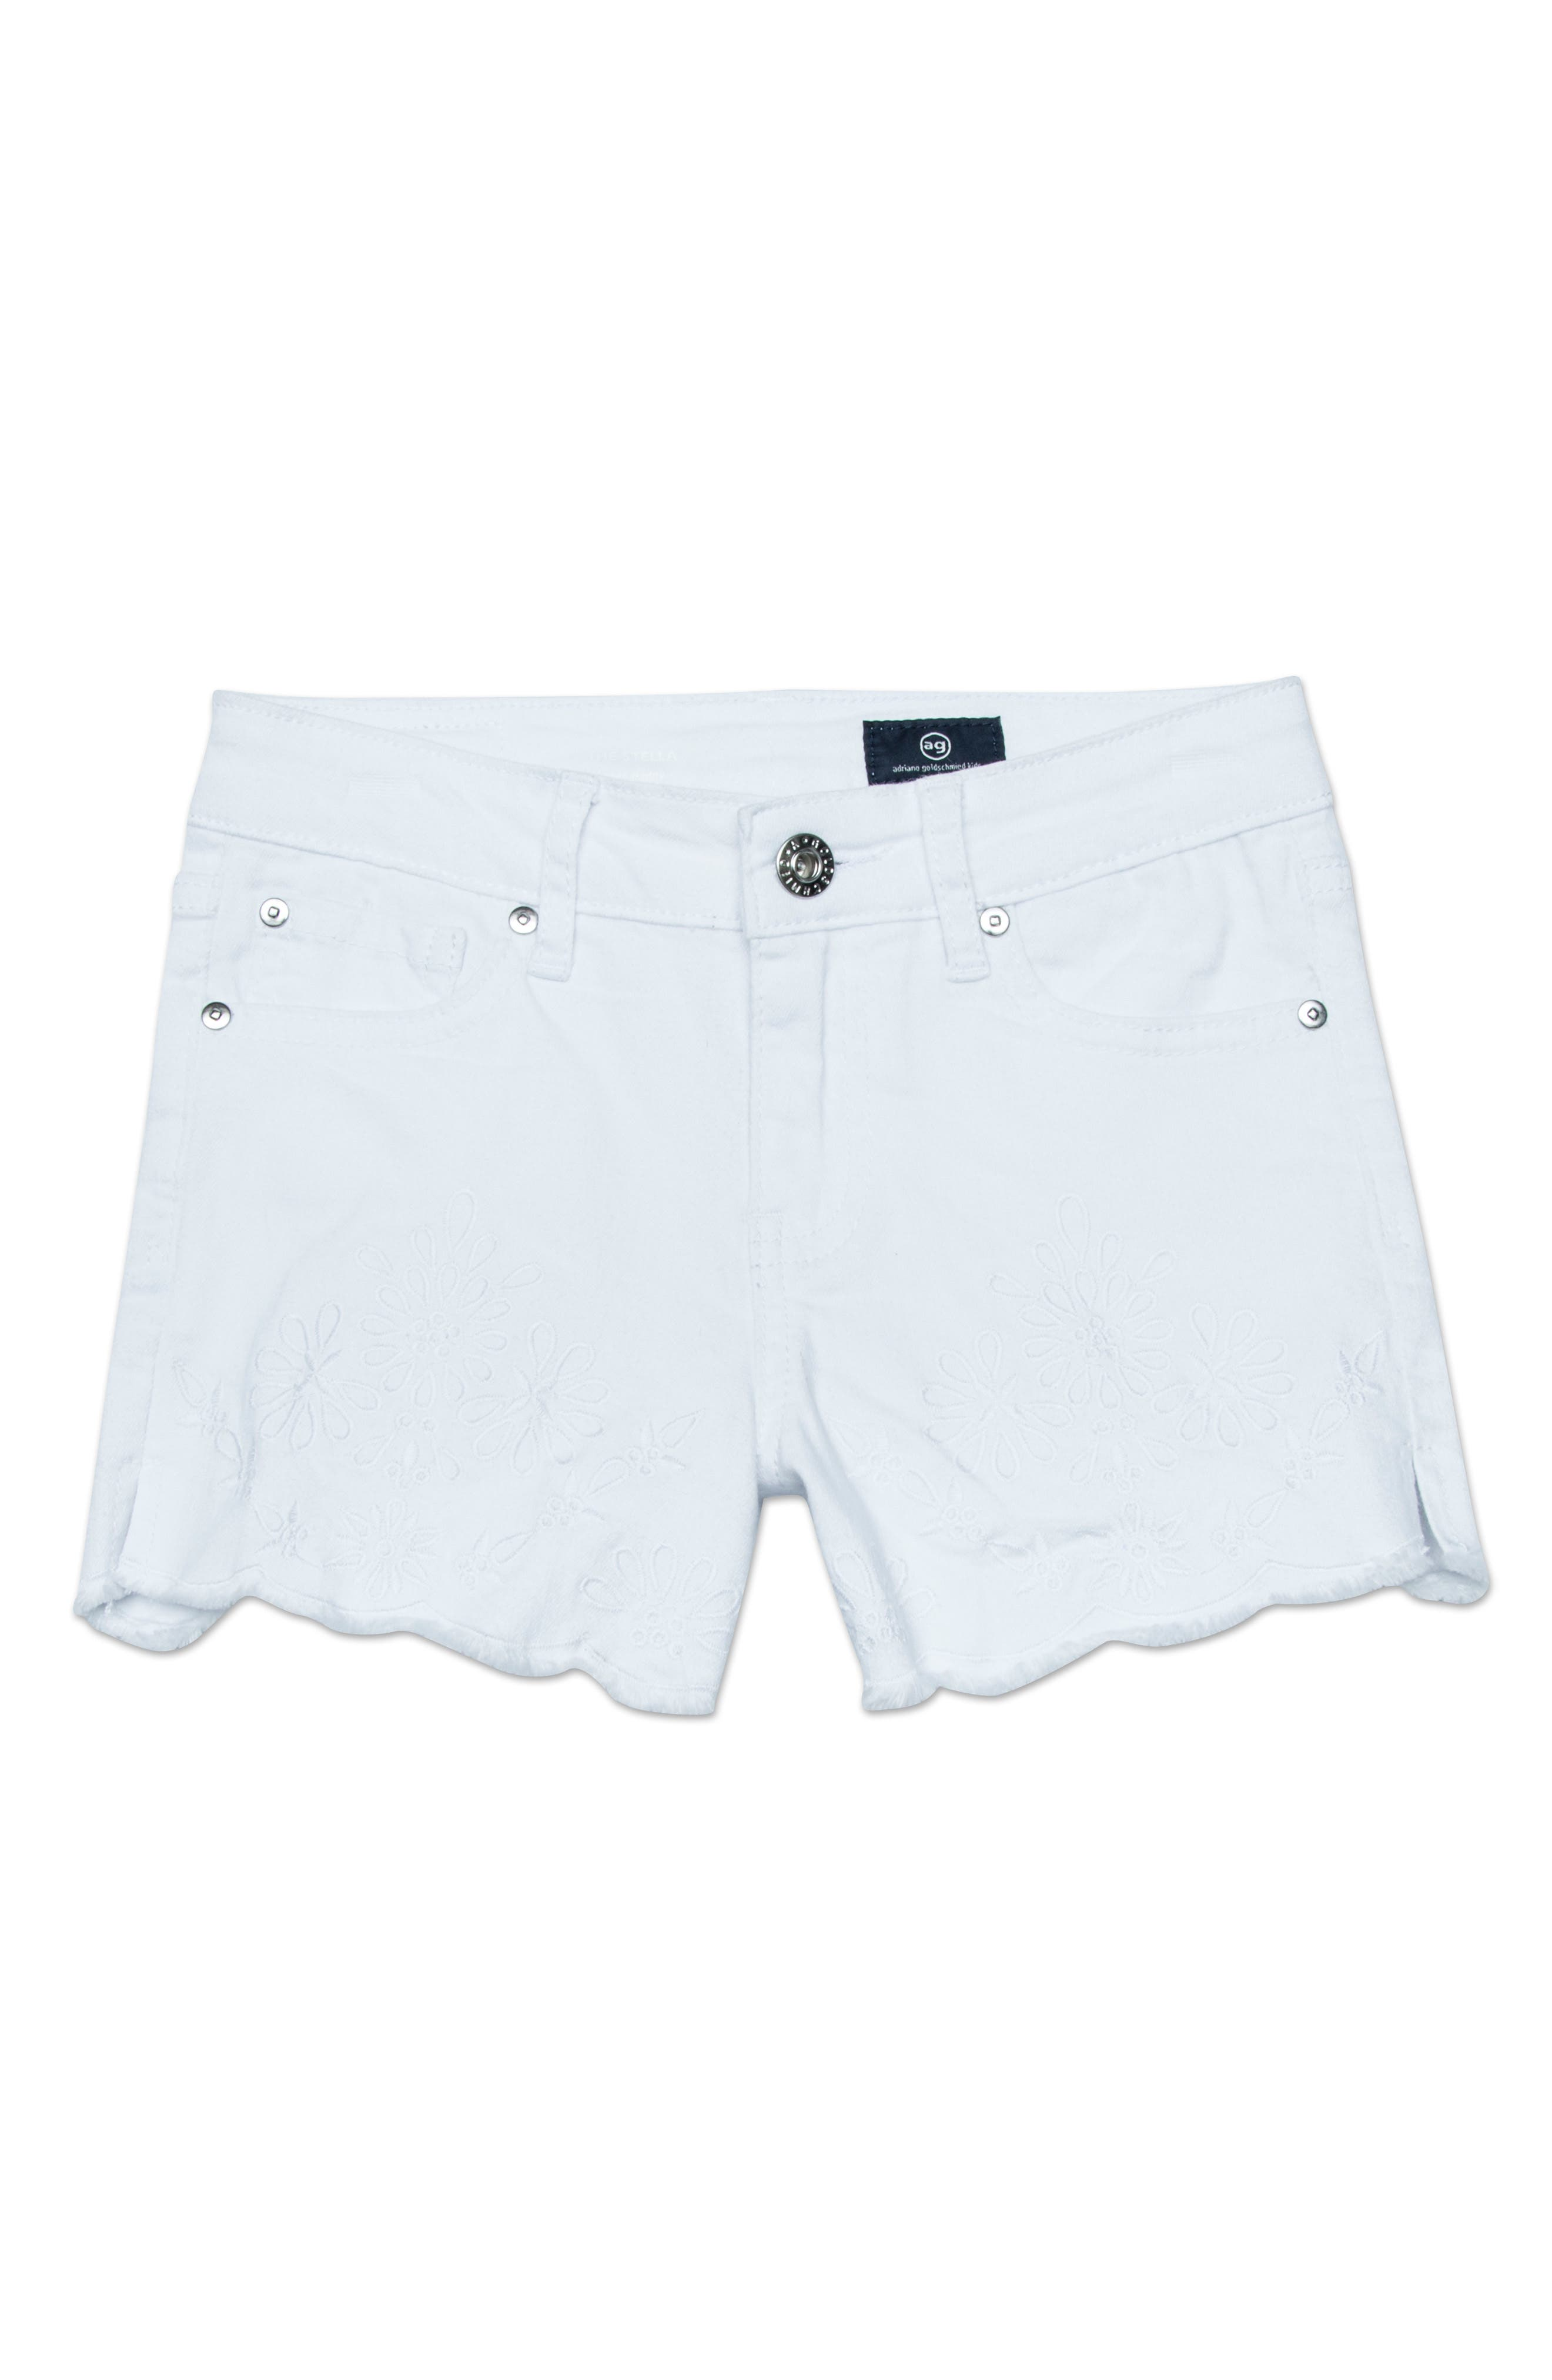 ag adriano goldschmeid kids The Brooklyn Scallop Denim Shorts,                             Main thumbnail 1, color,                             WHITE/ COCONUT